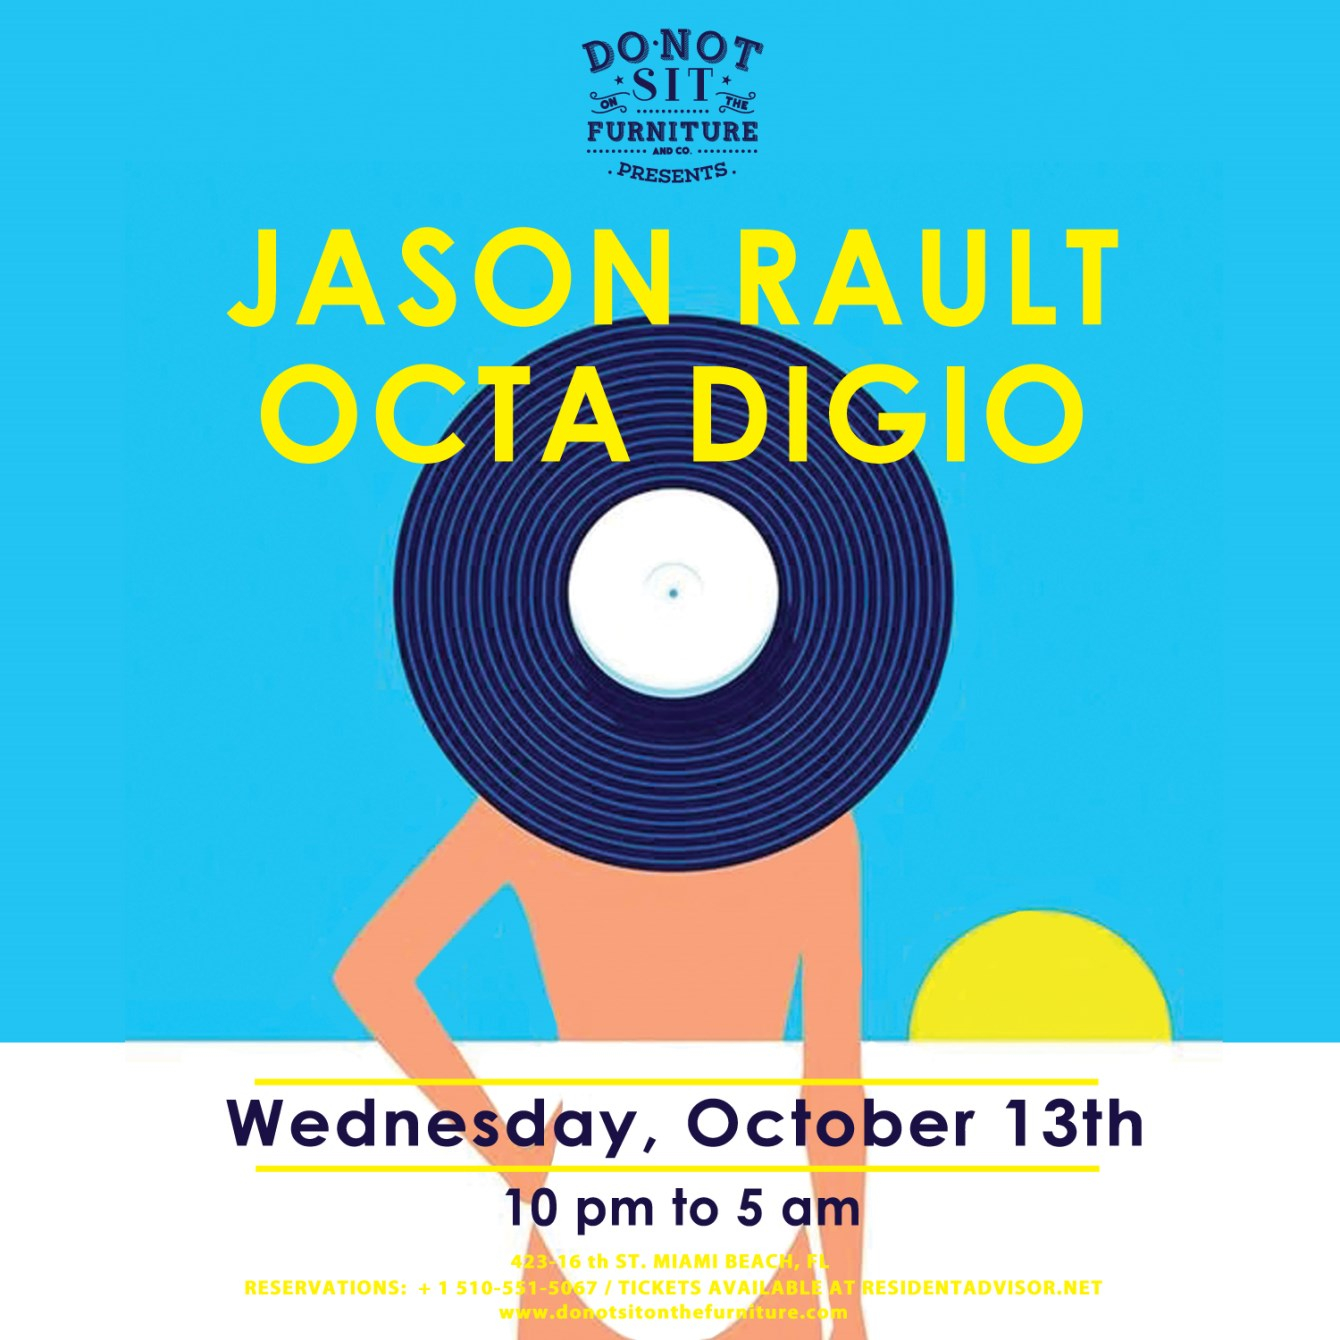 Jason Rault and Octa Digio - Flyer front